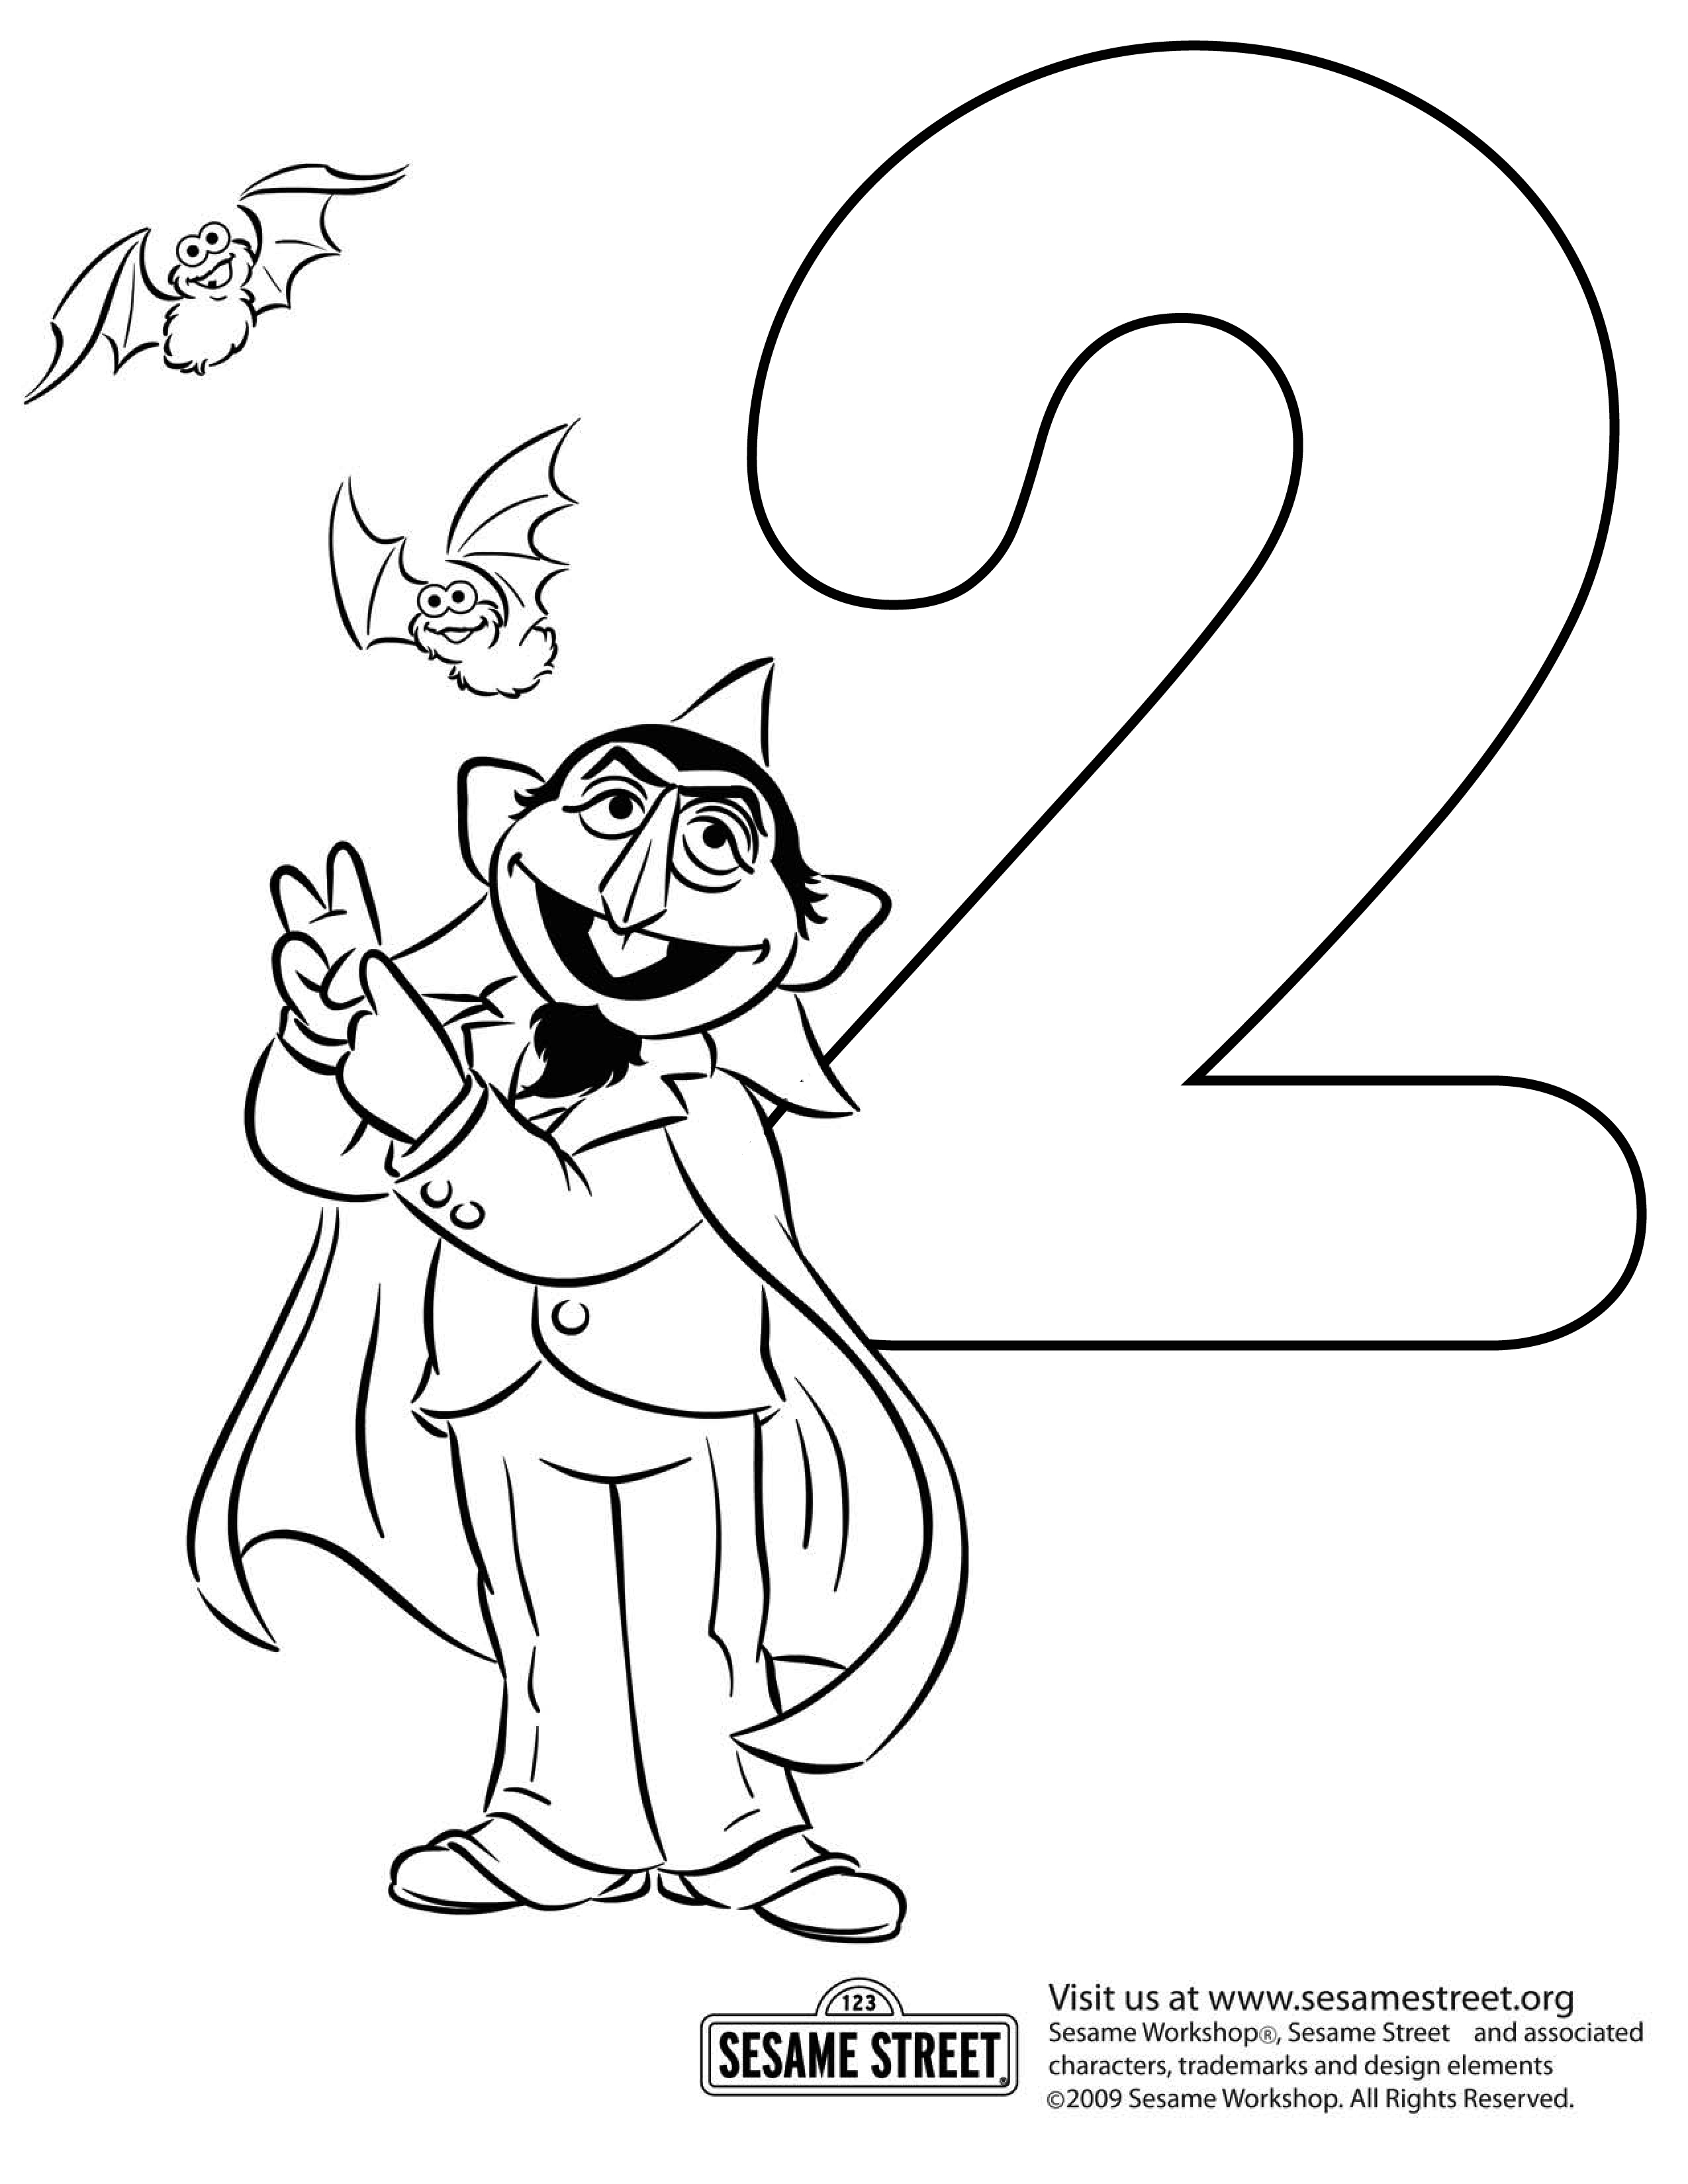 Fabulous Free Printable Sesame Street Coloring Pages 64 For With - Free Printable Sesame Street Coloring Pages